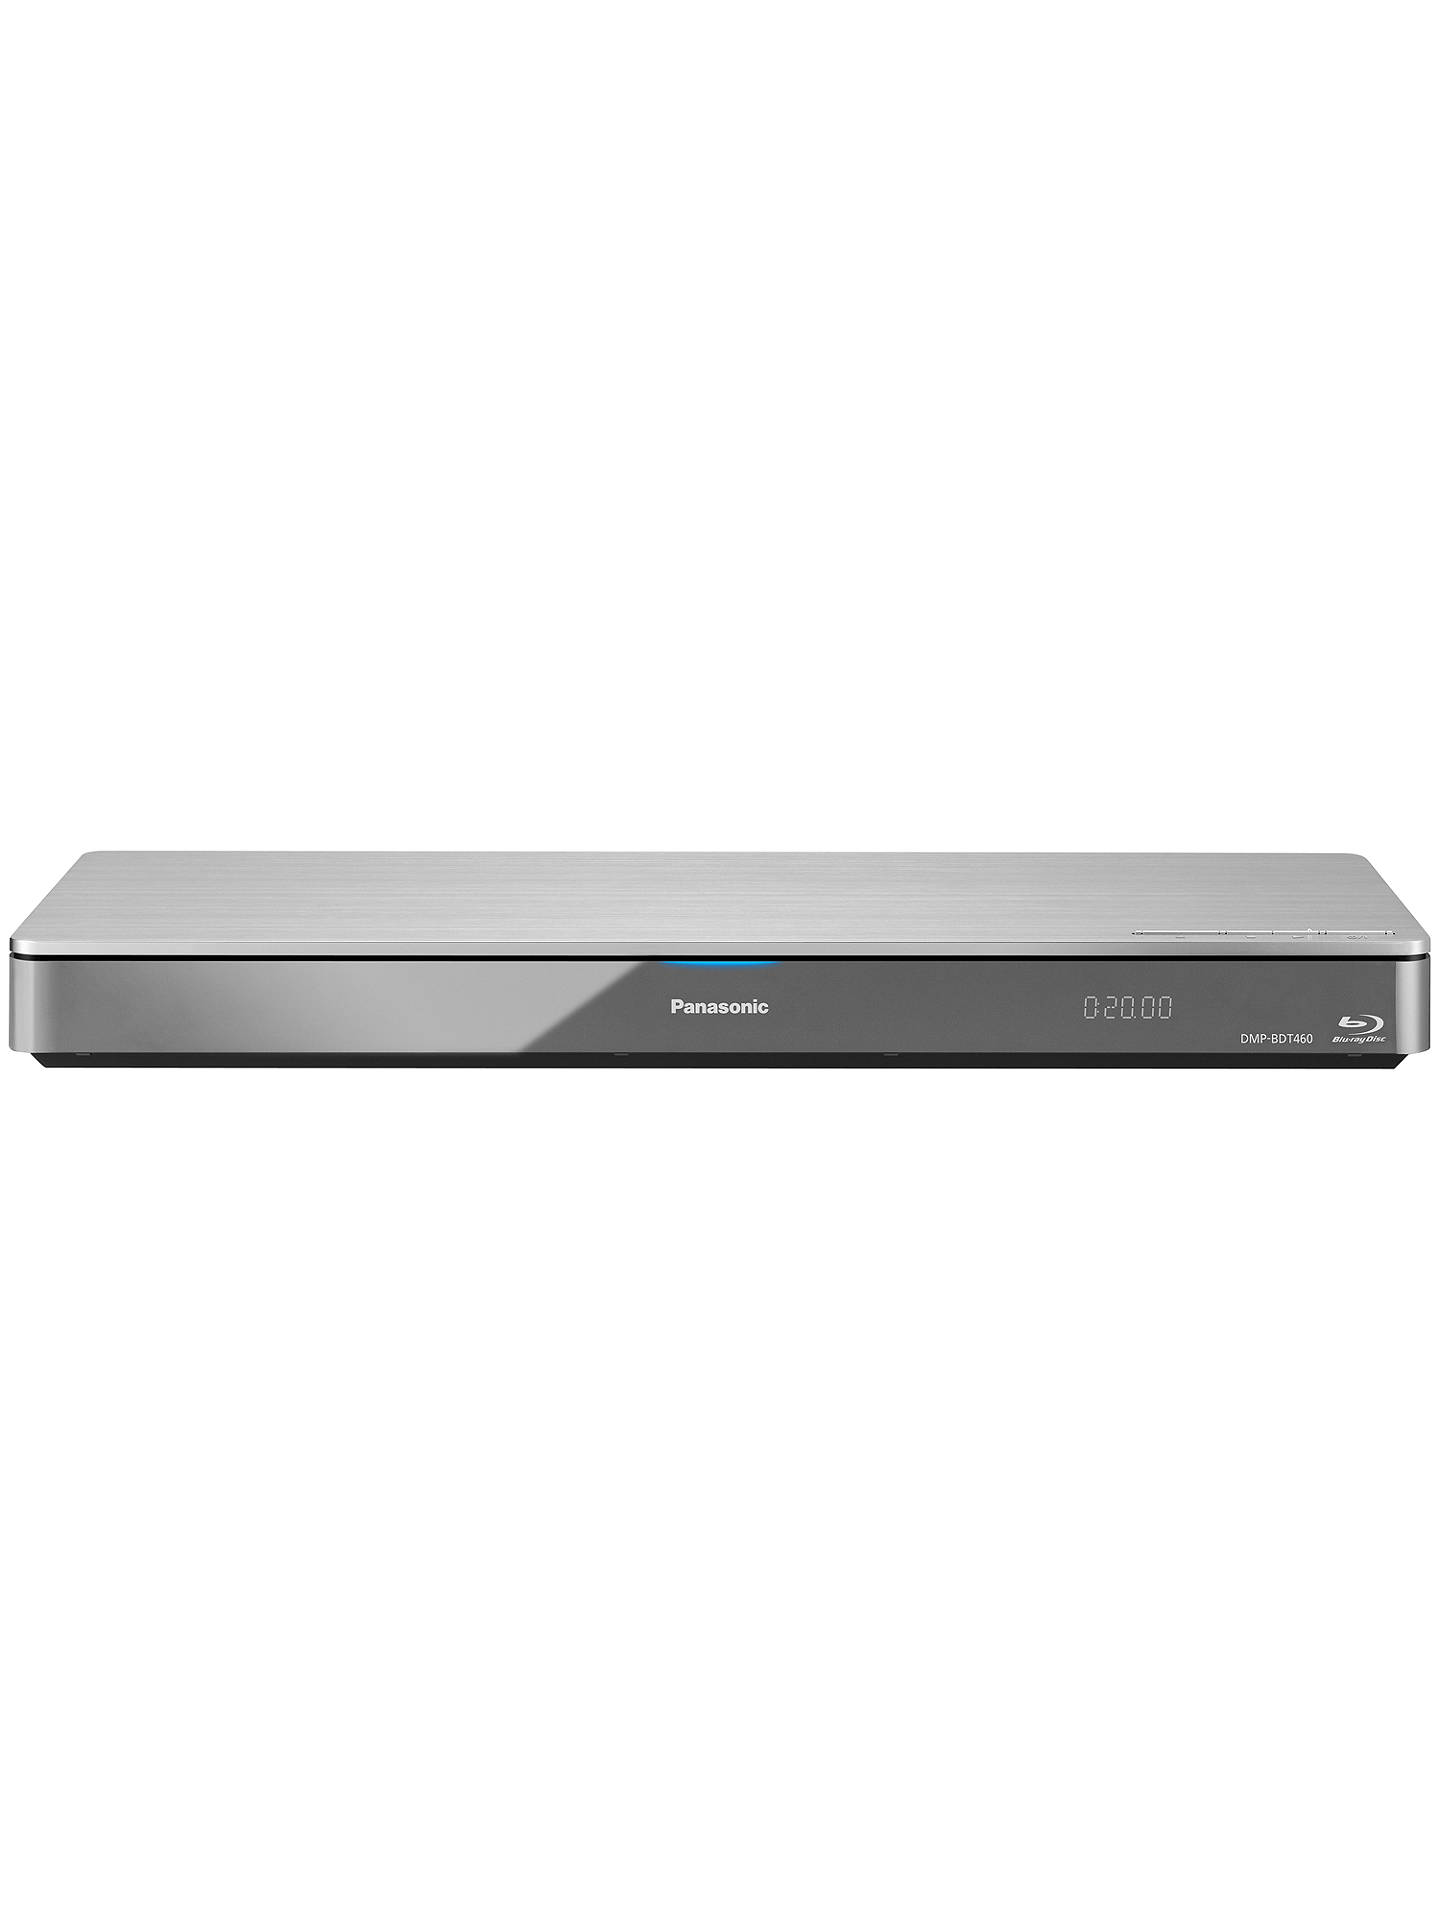 Panasonic Dmp Bdt460eb Smart 3d Blu Ray Discdvd Player At John